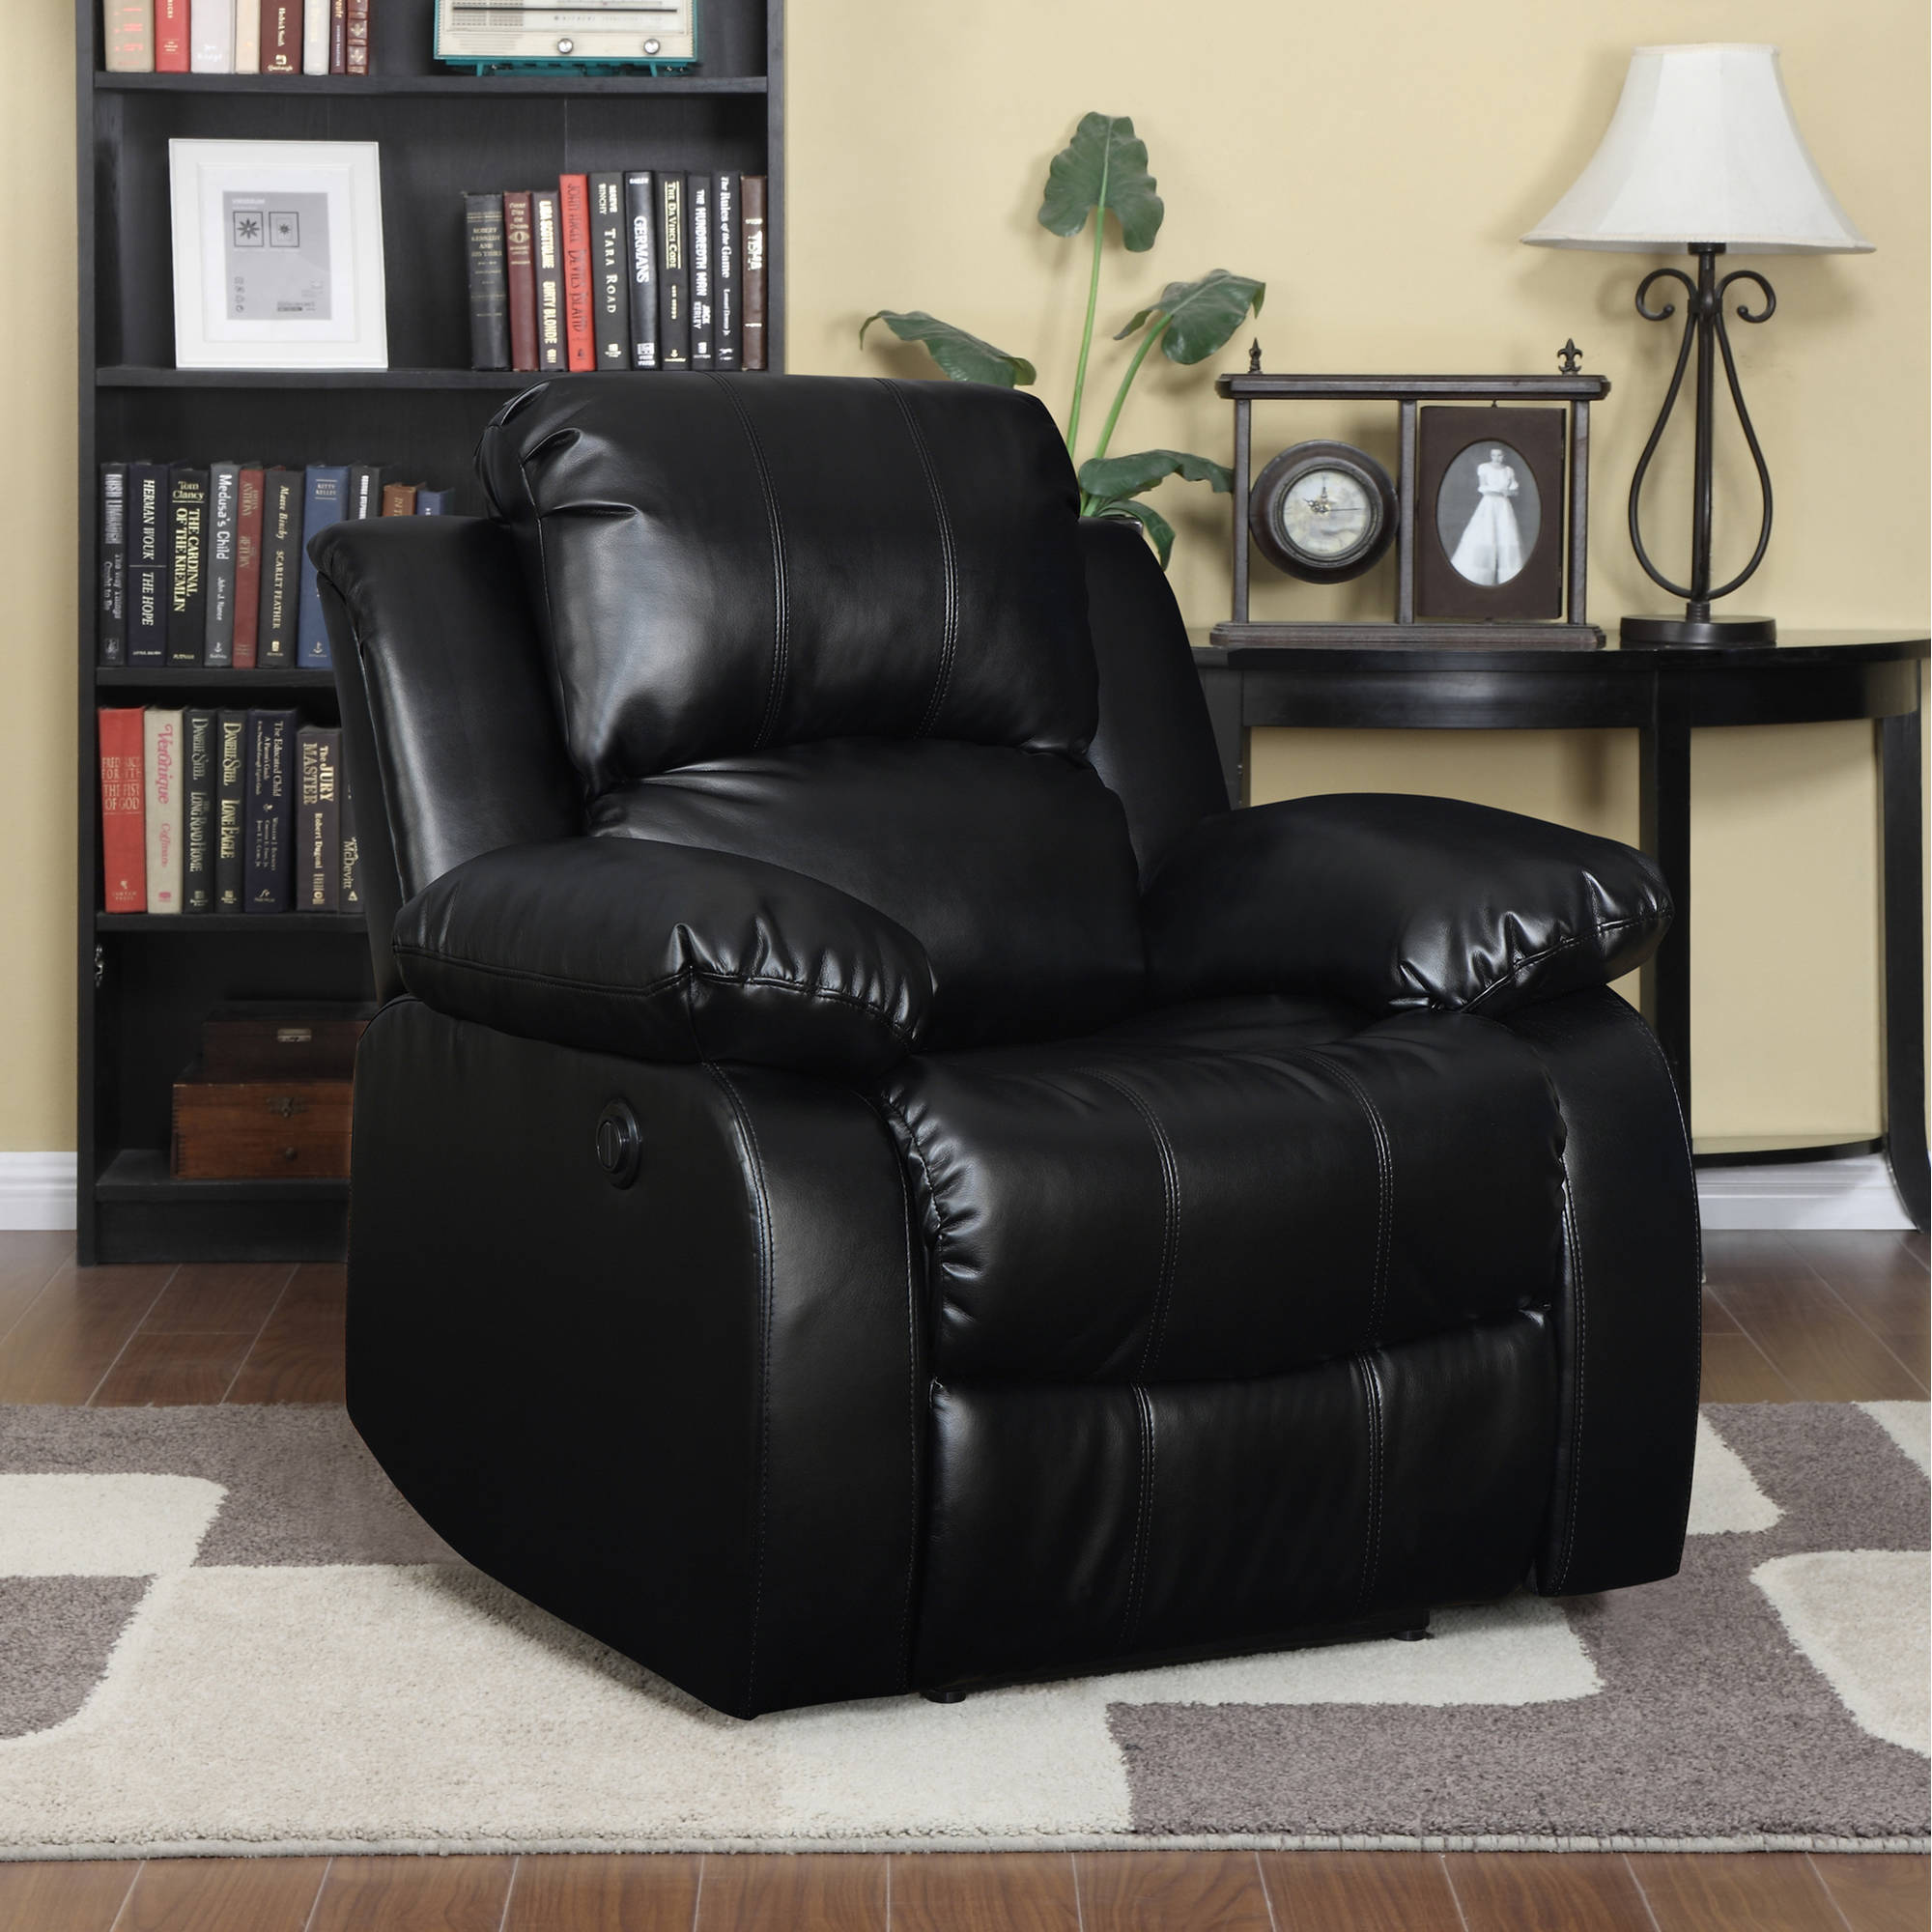 ProLounger Power Wall Hugger Recliner Multiple Colors & ProLounger Power Wall Hugger Recliner Multiple Colors - Walmart.com islam-shia.org